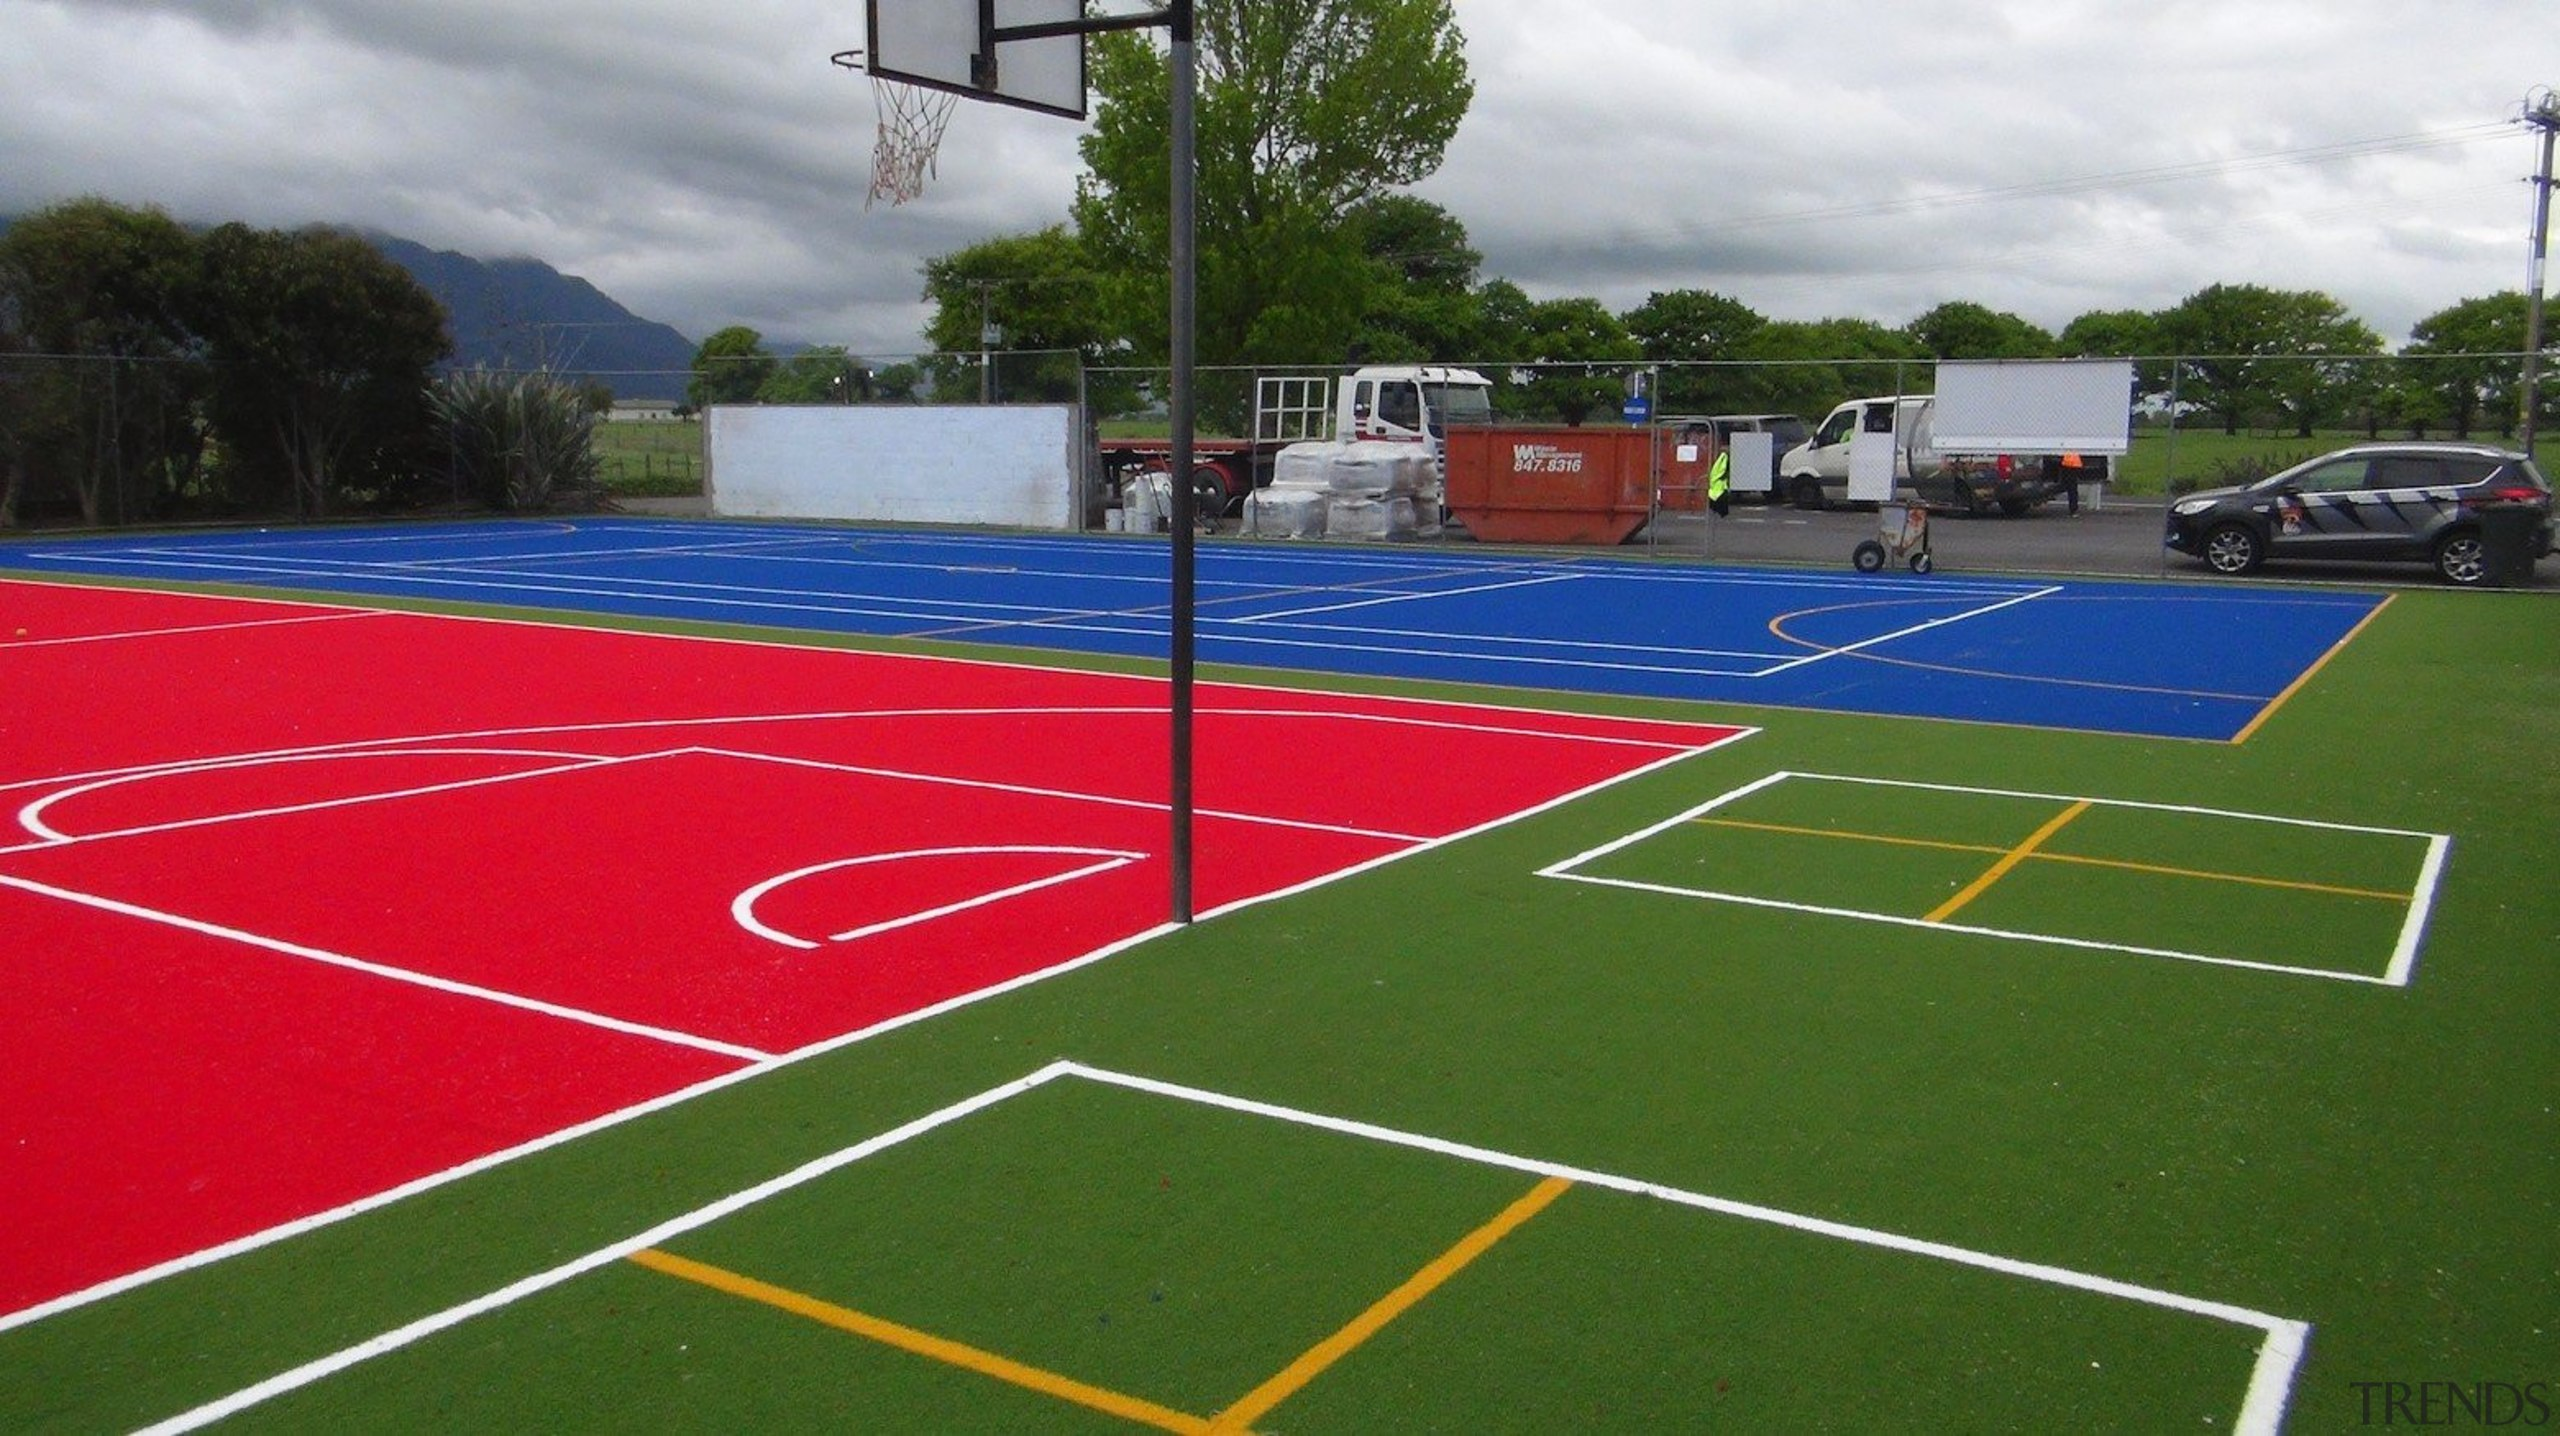 Pre-school, primary & seconday education - Pre-school, primary ball game, grass, line, sport venue, sports, structure, tennis court, green